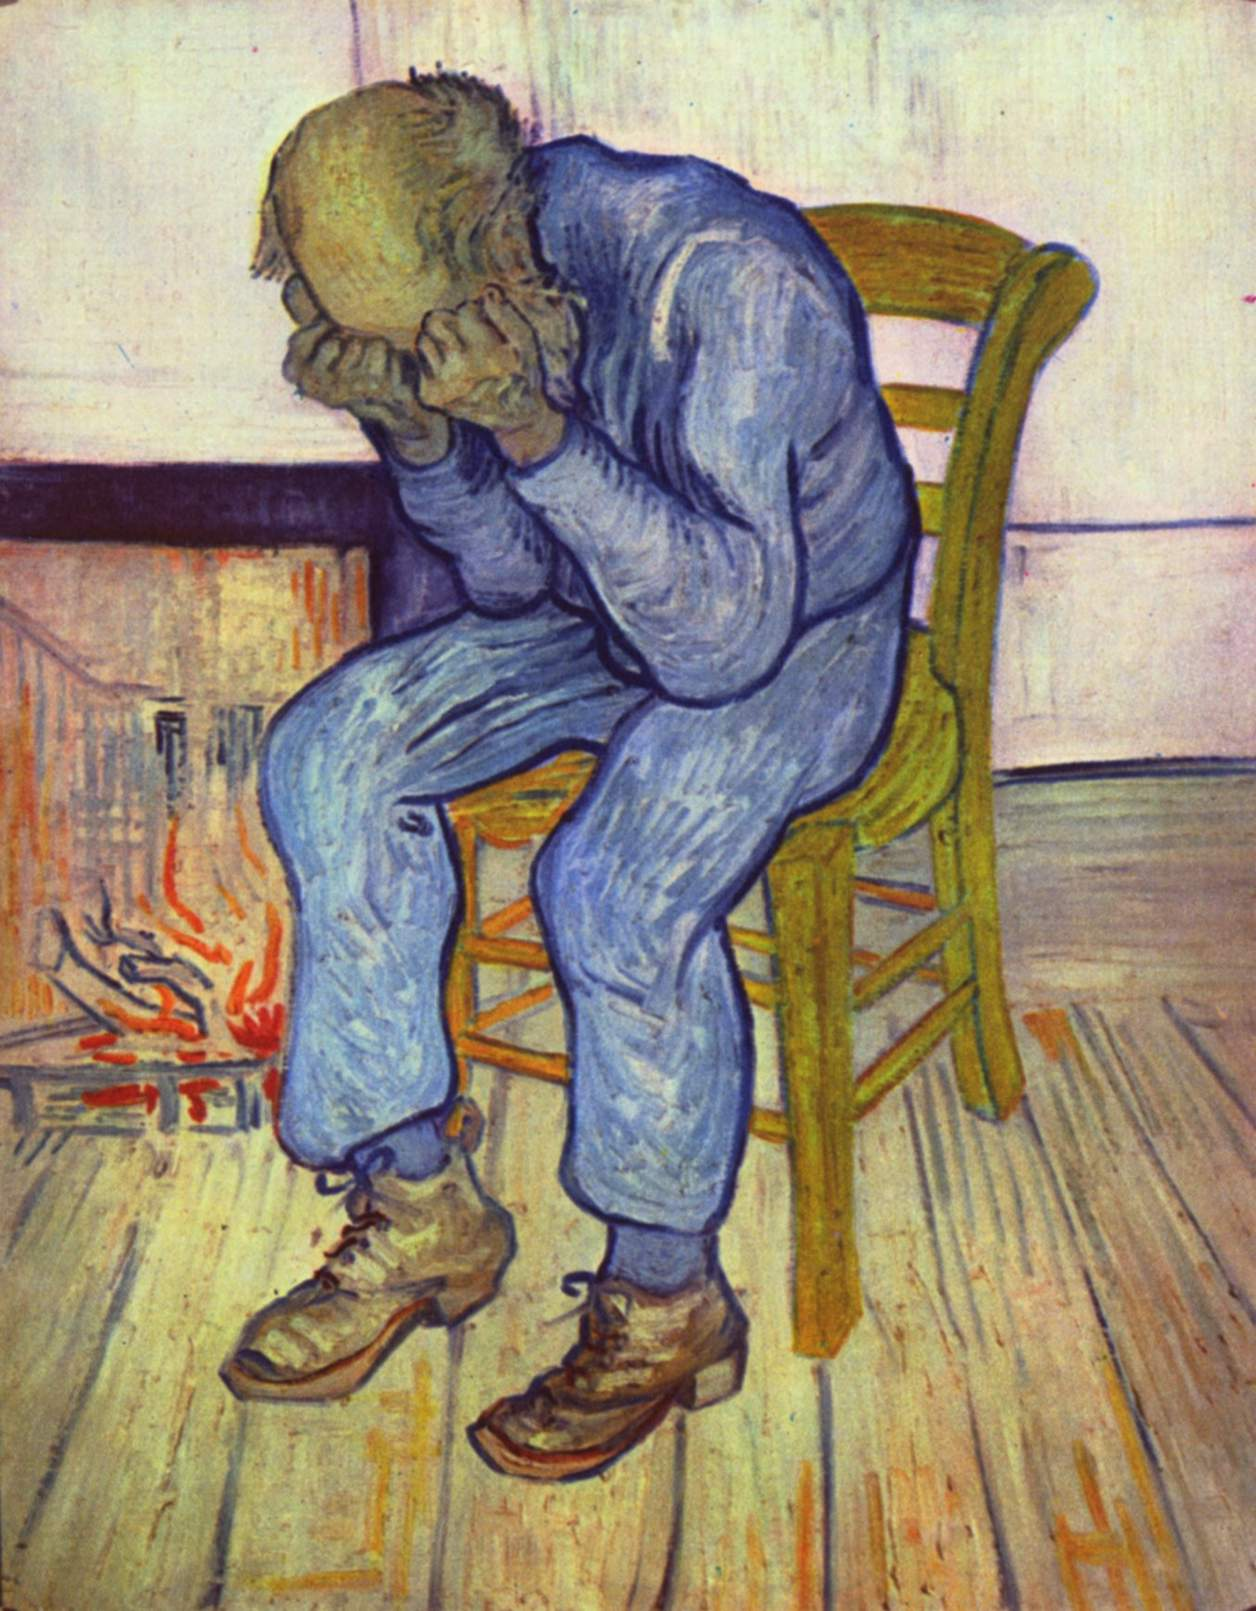 Van_Gogh_Sorrowing Old Man